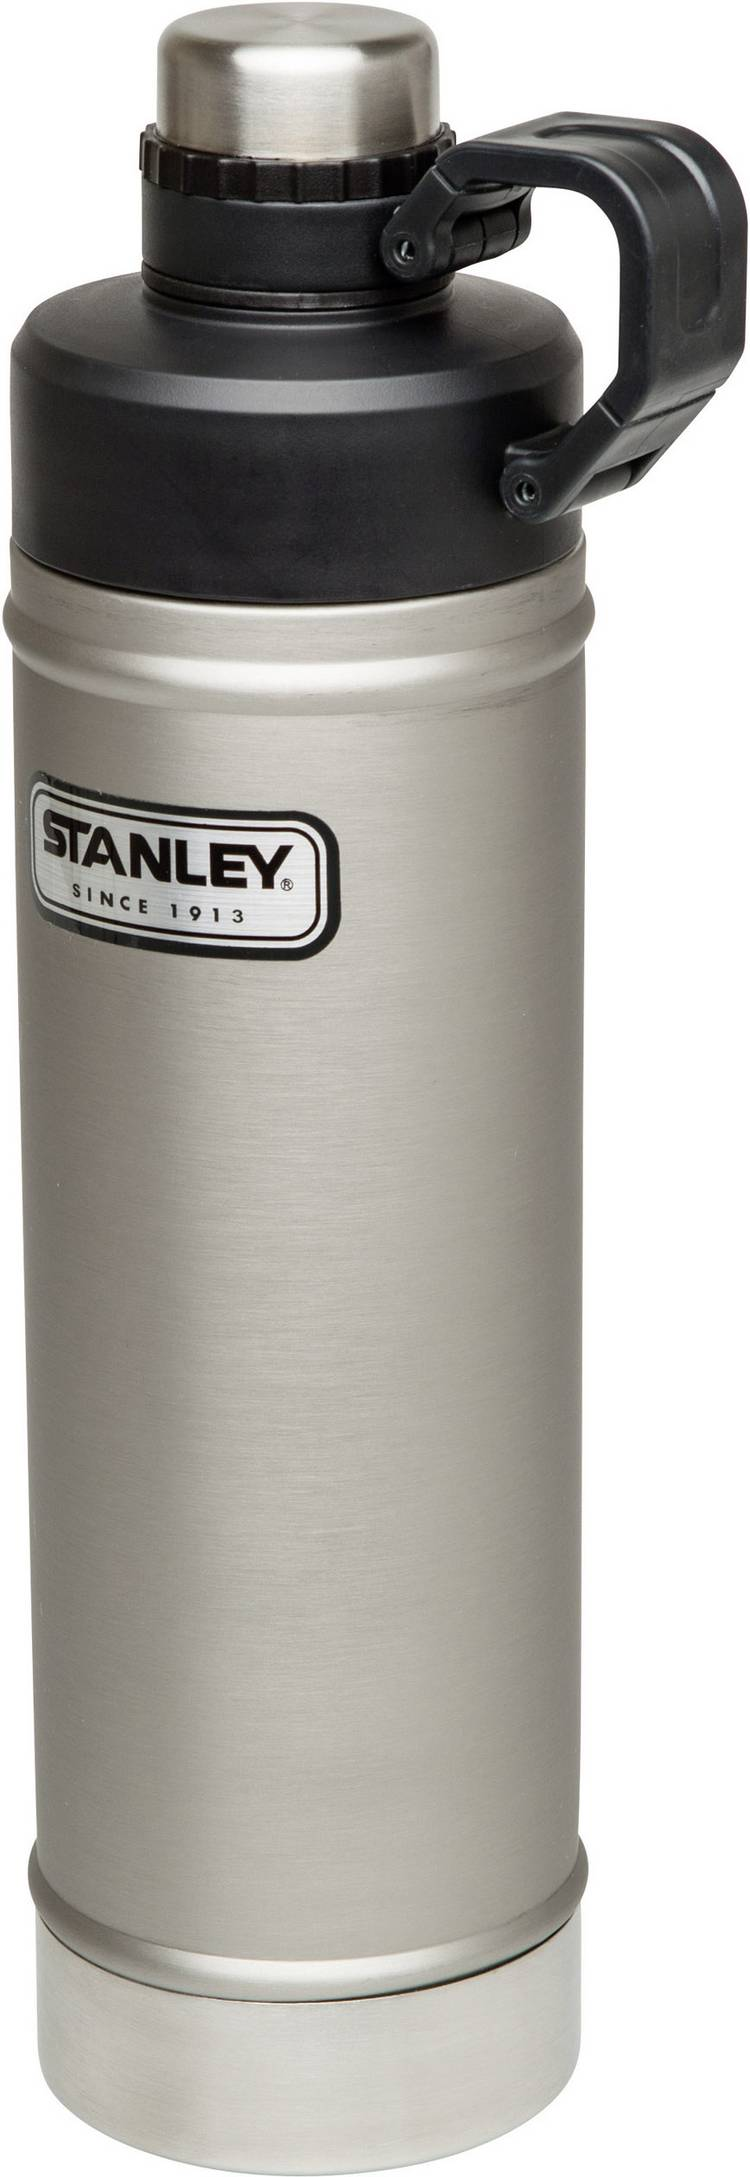 Stanley Classic Vakuum-Bottle 10-02286-004 Thermosfles Zilver-zwart 750 ml